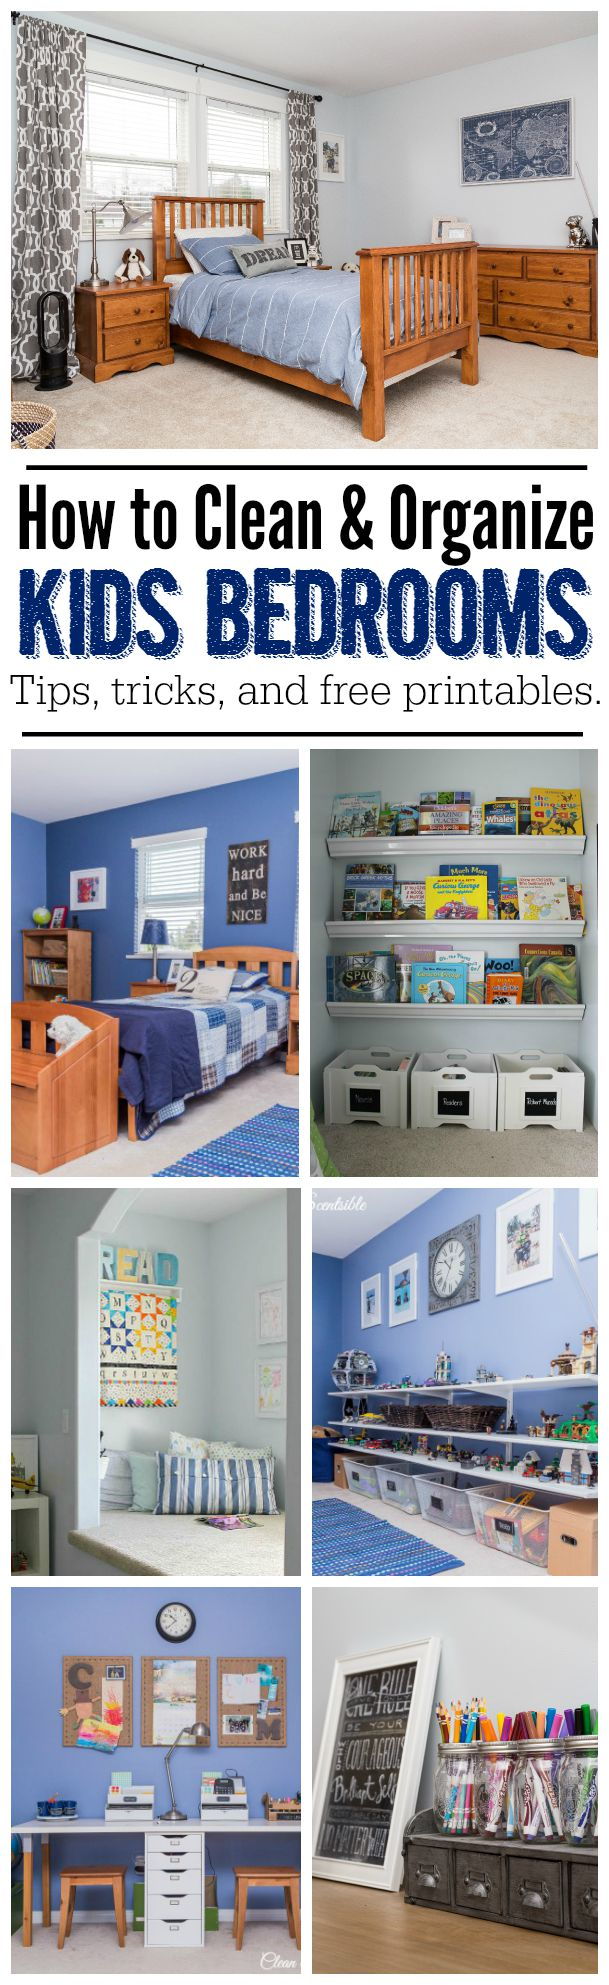 Kids Bedroom Organization how to organize kids bedrooms - clean and scentsible